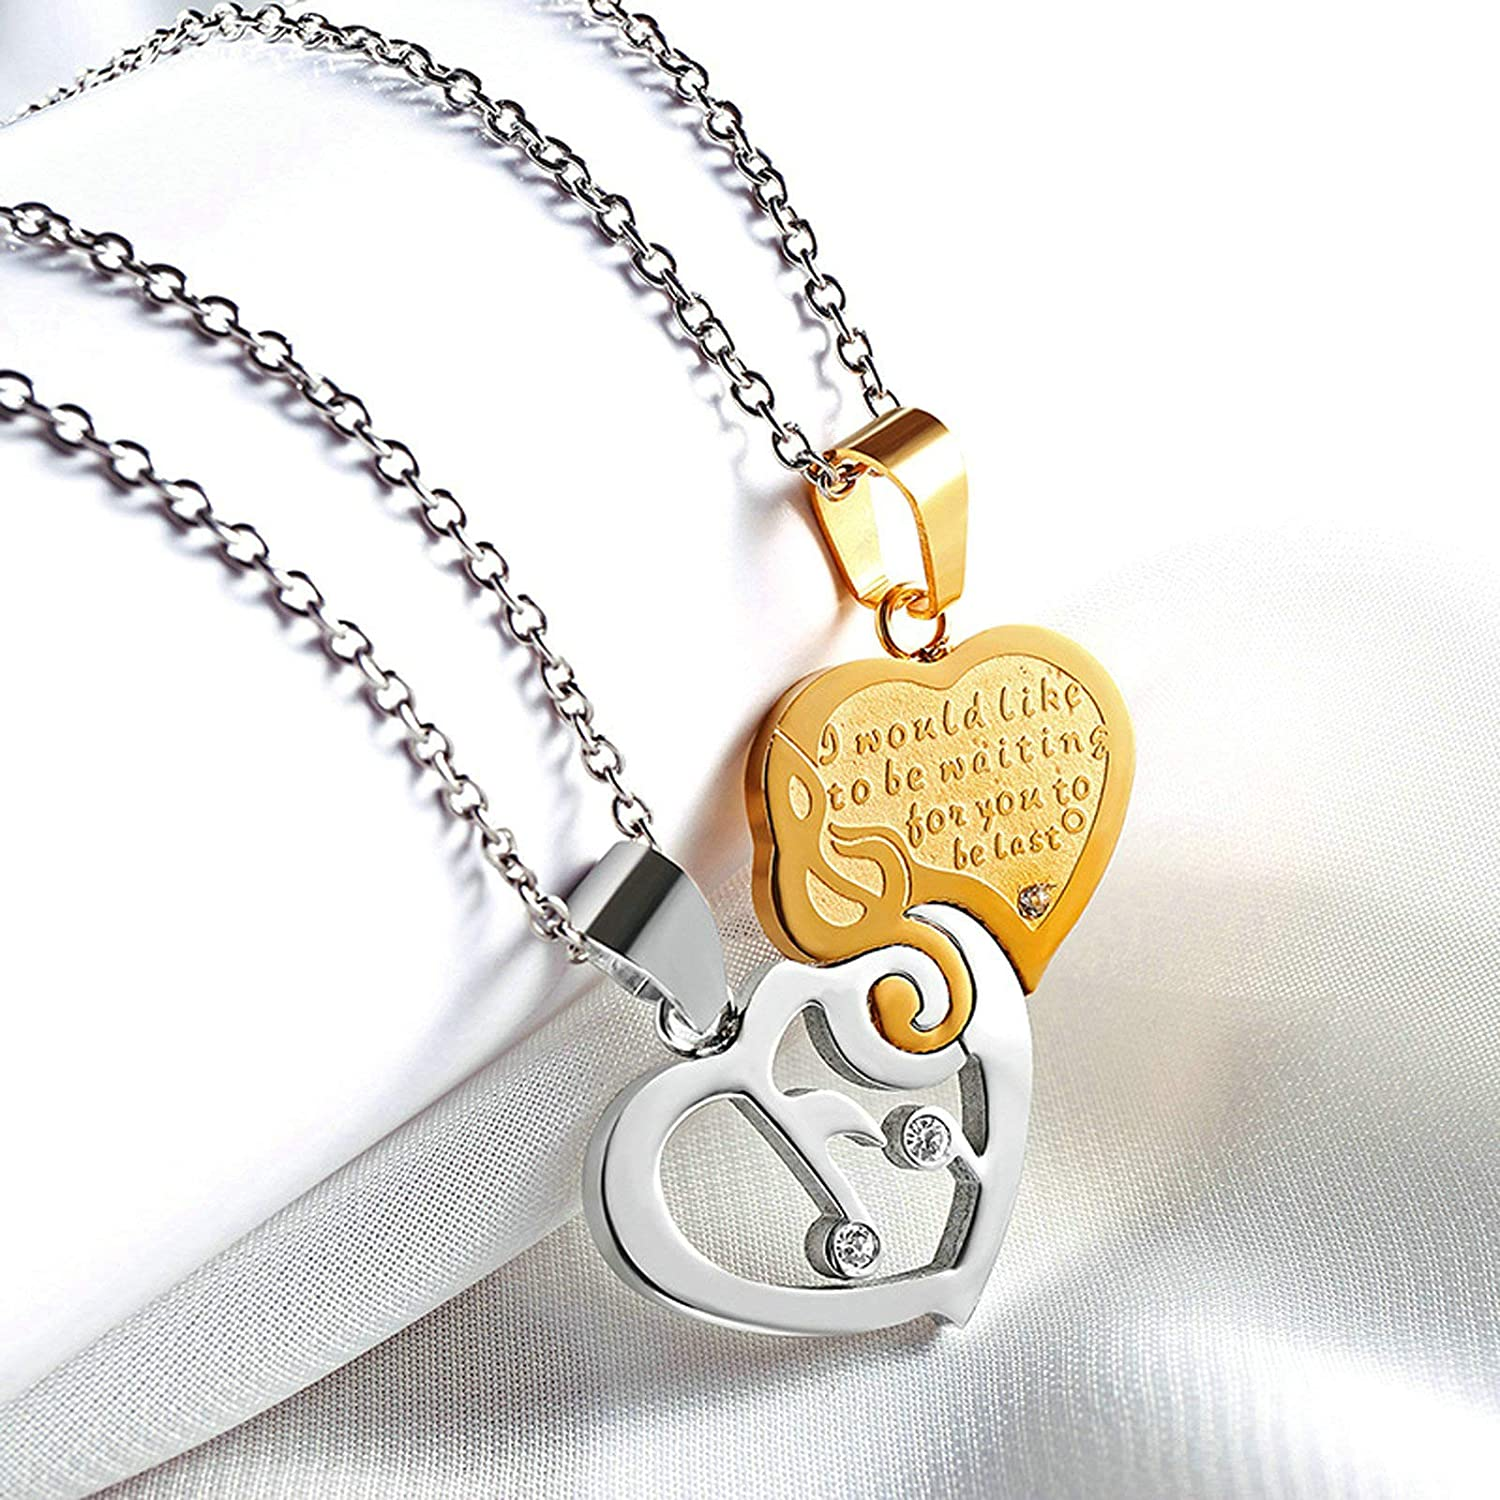 Aooaz Necklace Set Stainless Steel Anniversary Necklace for Couple Matching Musical Note Necklace Set for Couples Silver Gold